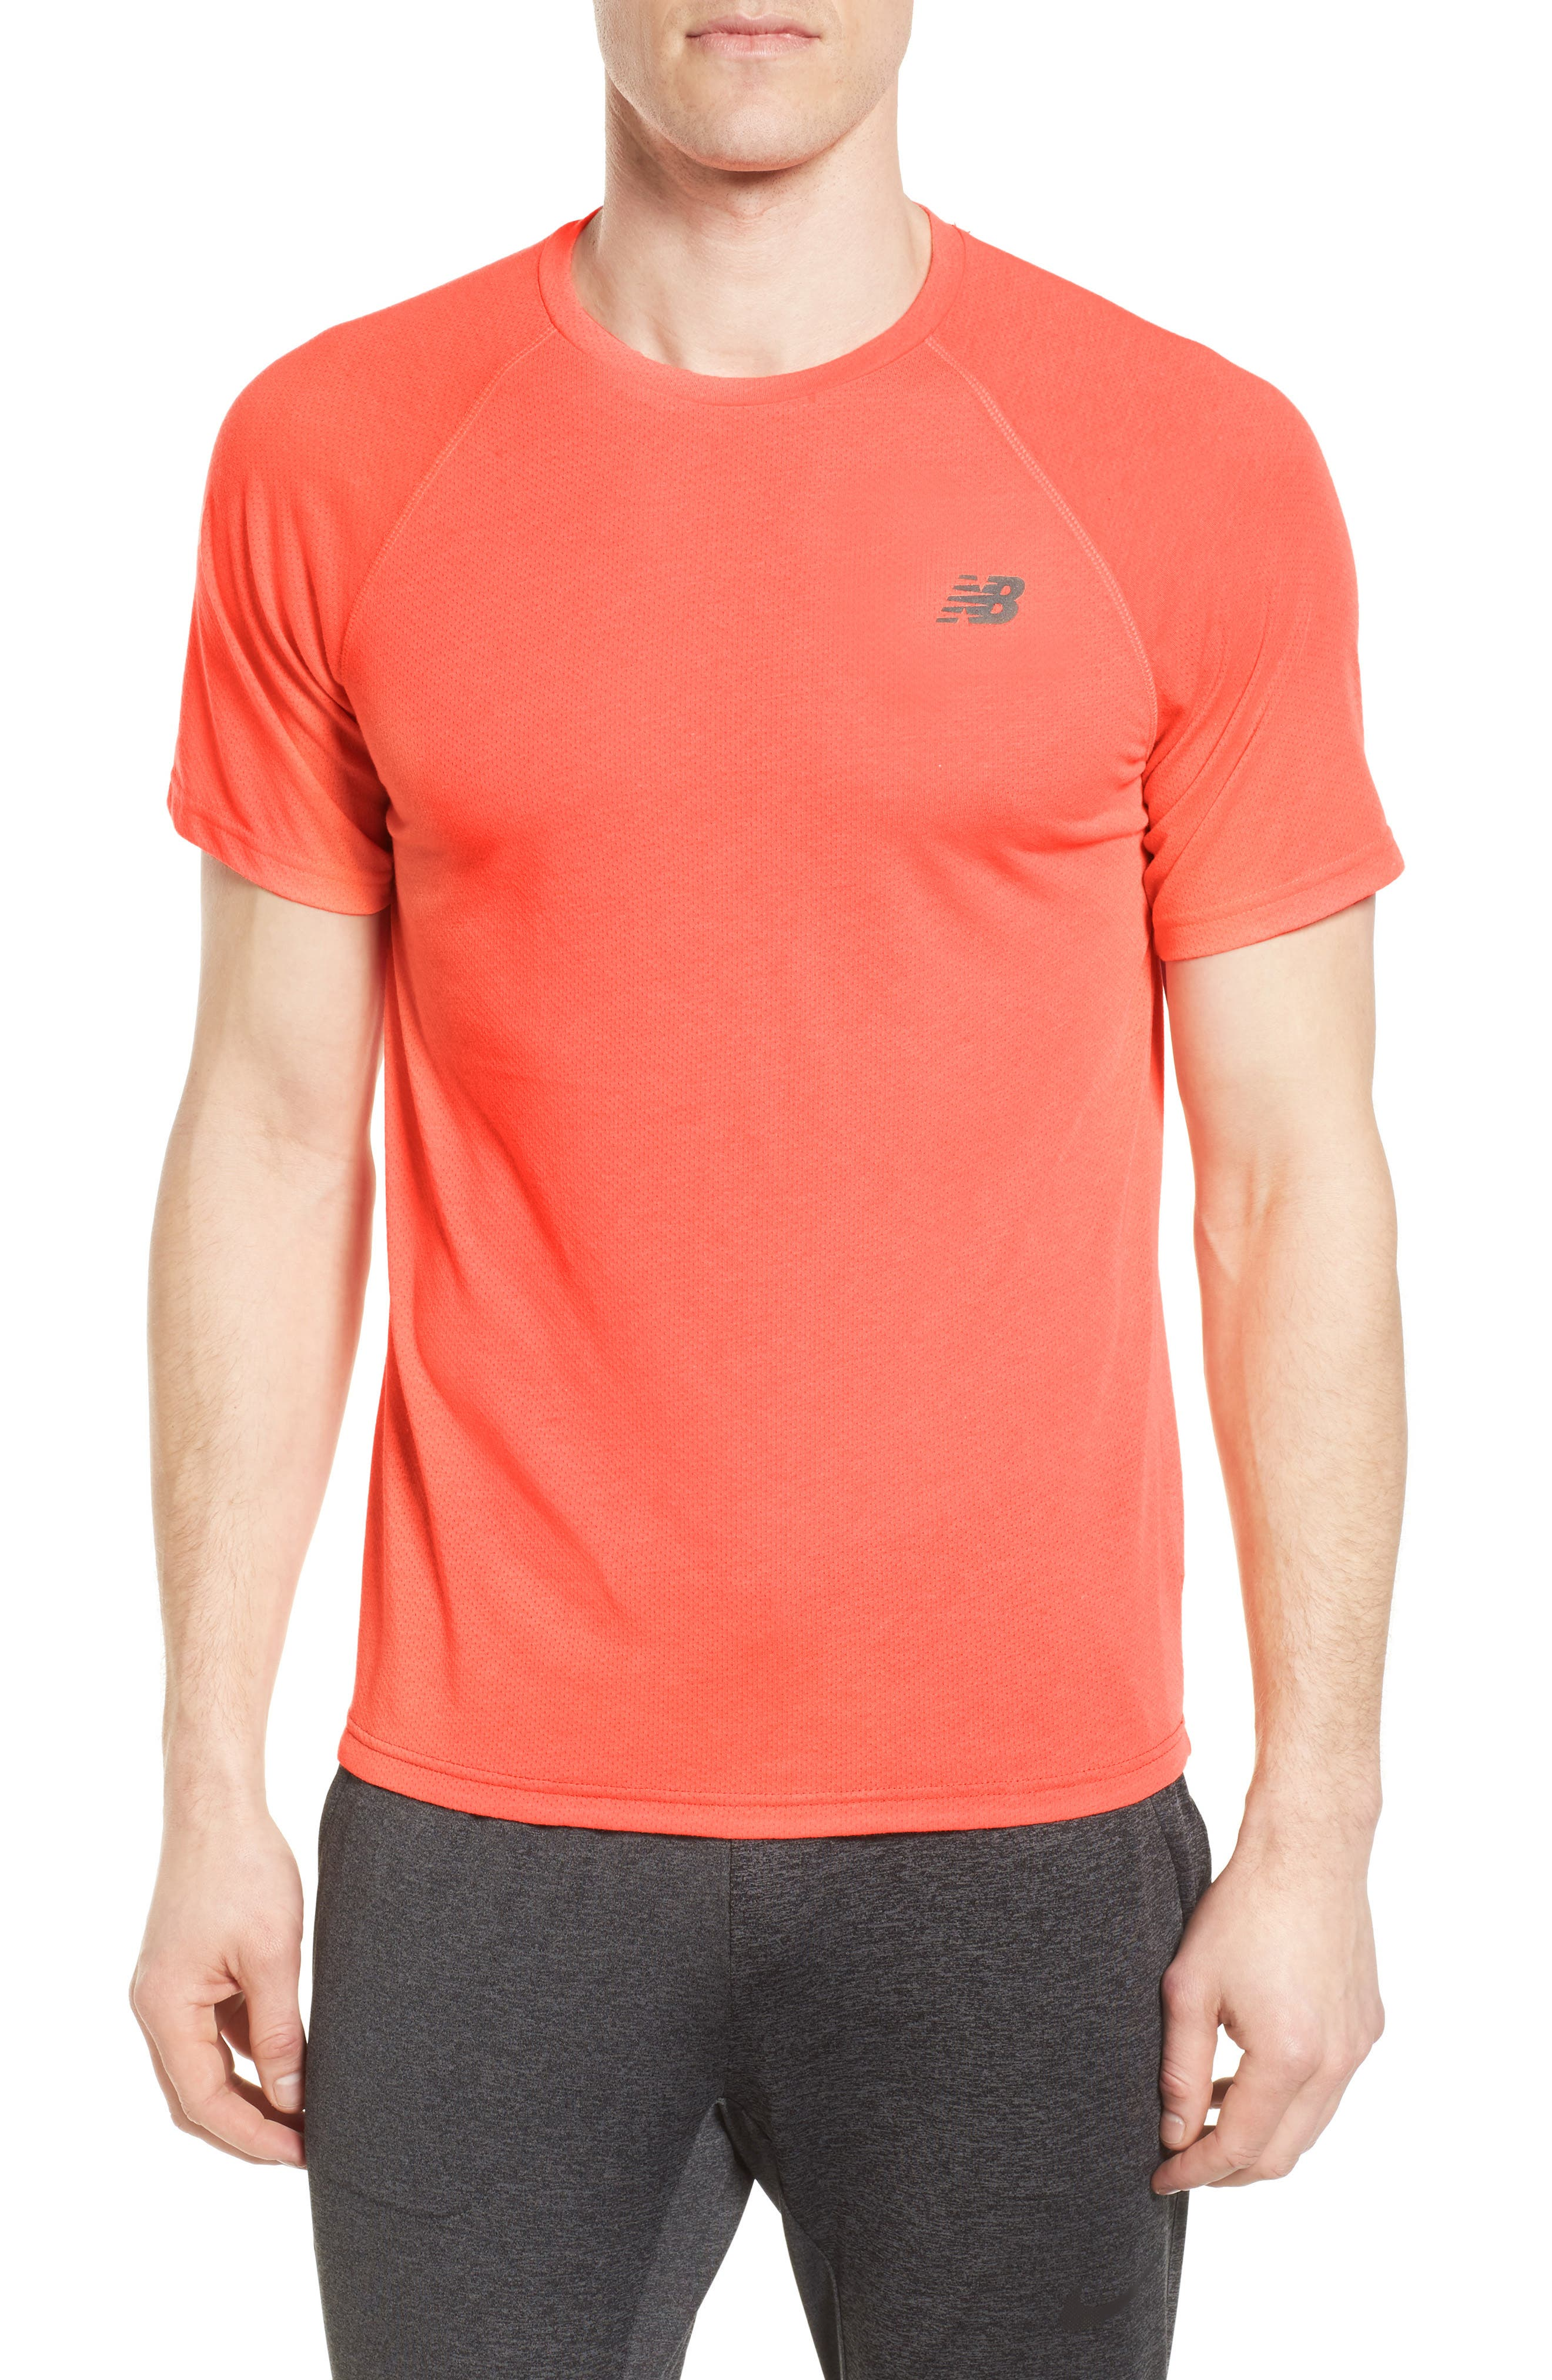 New Balance Breathe Training T-Shirt